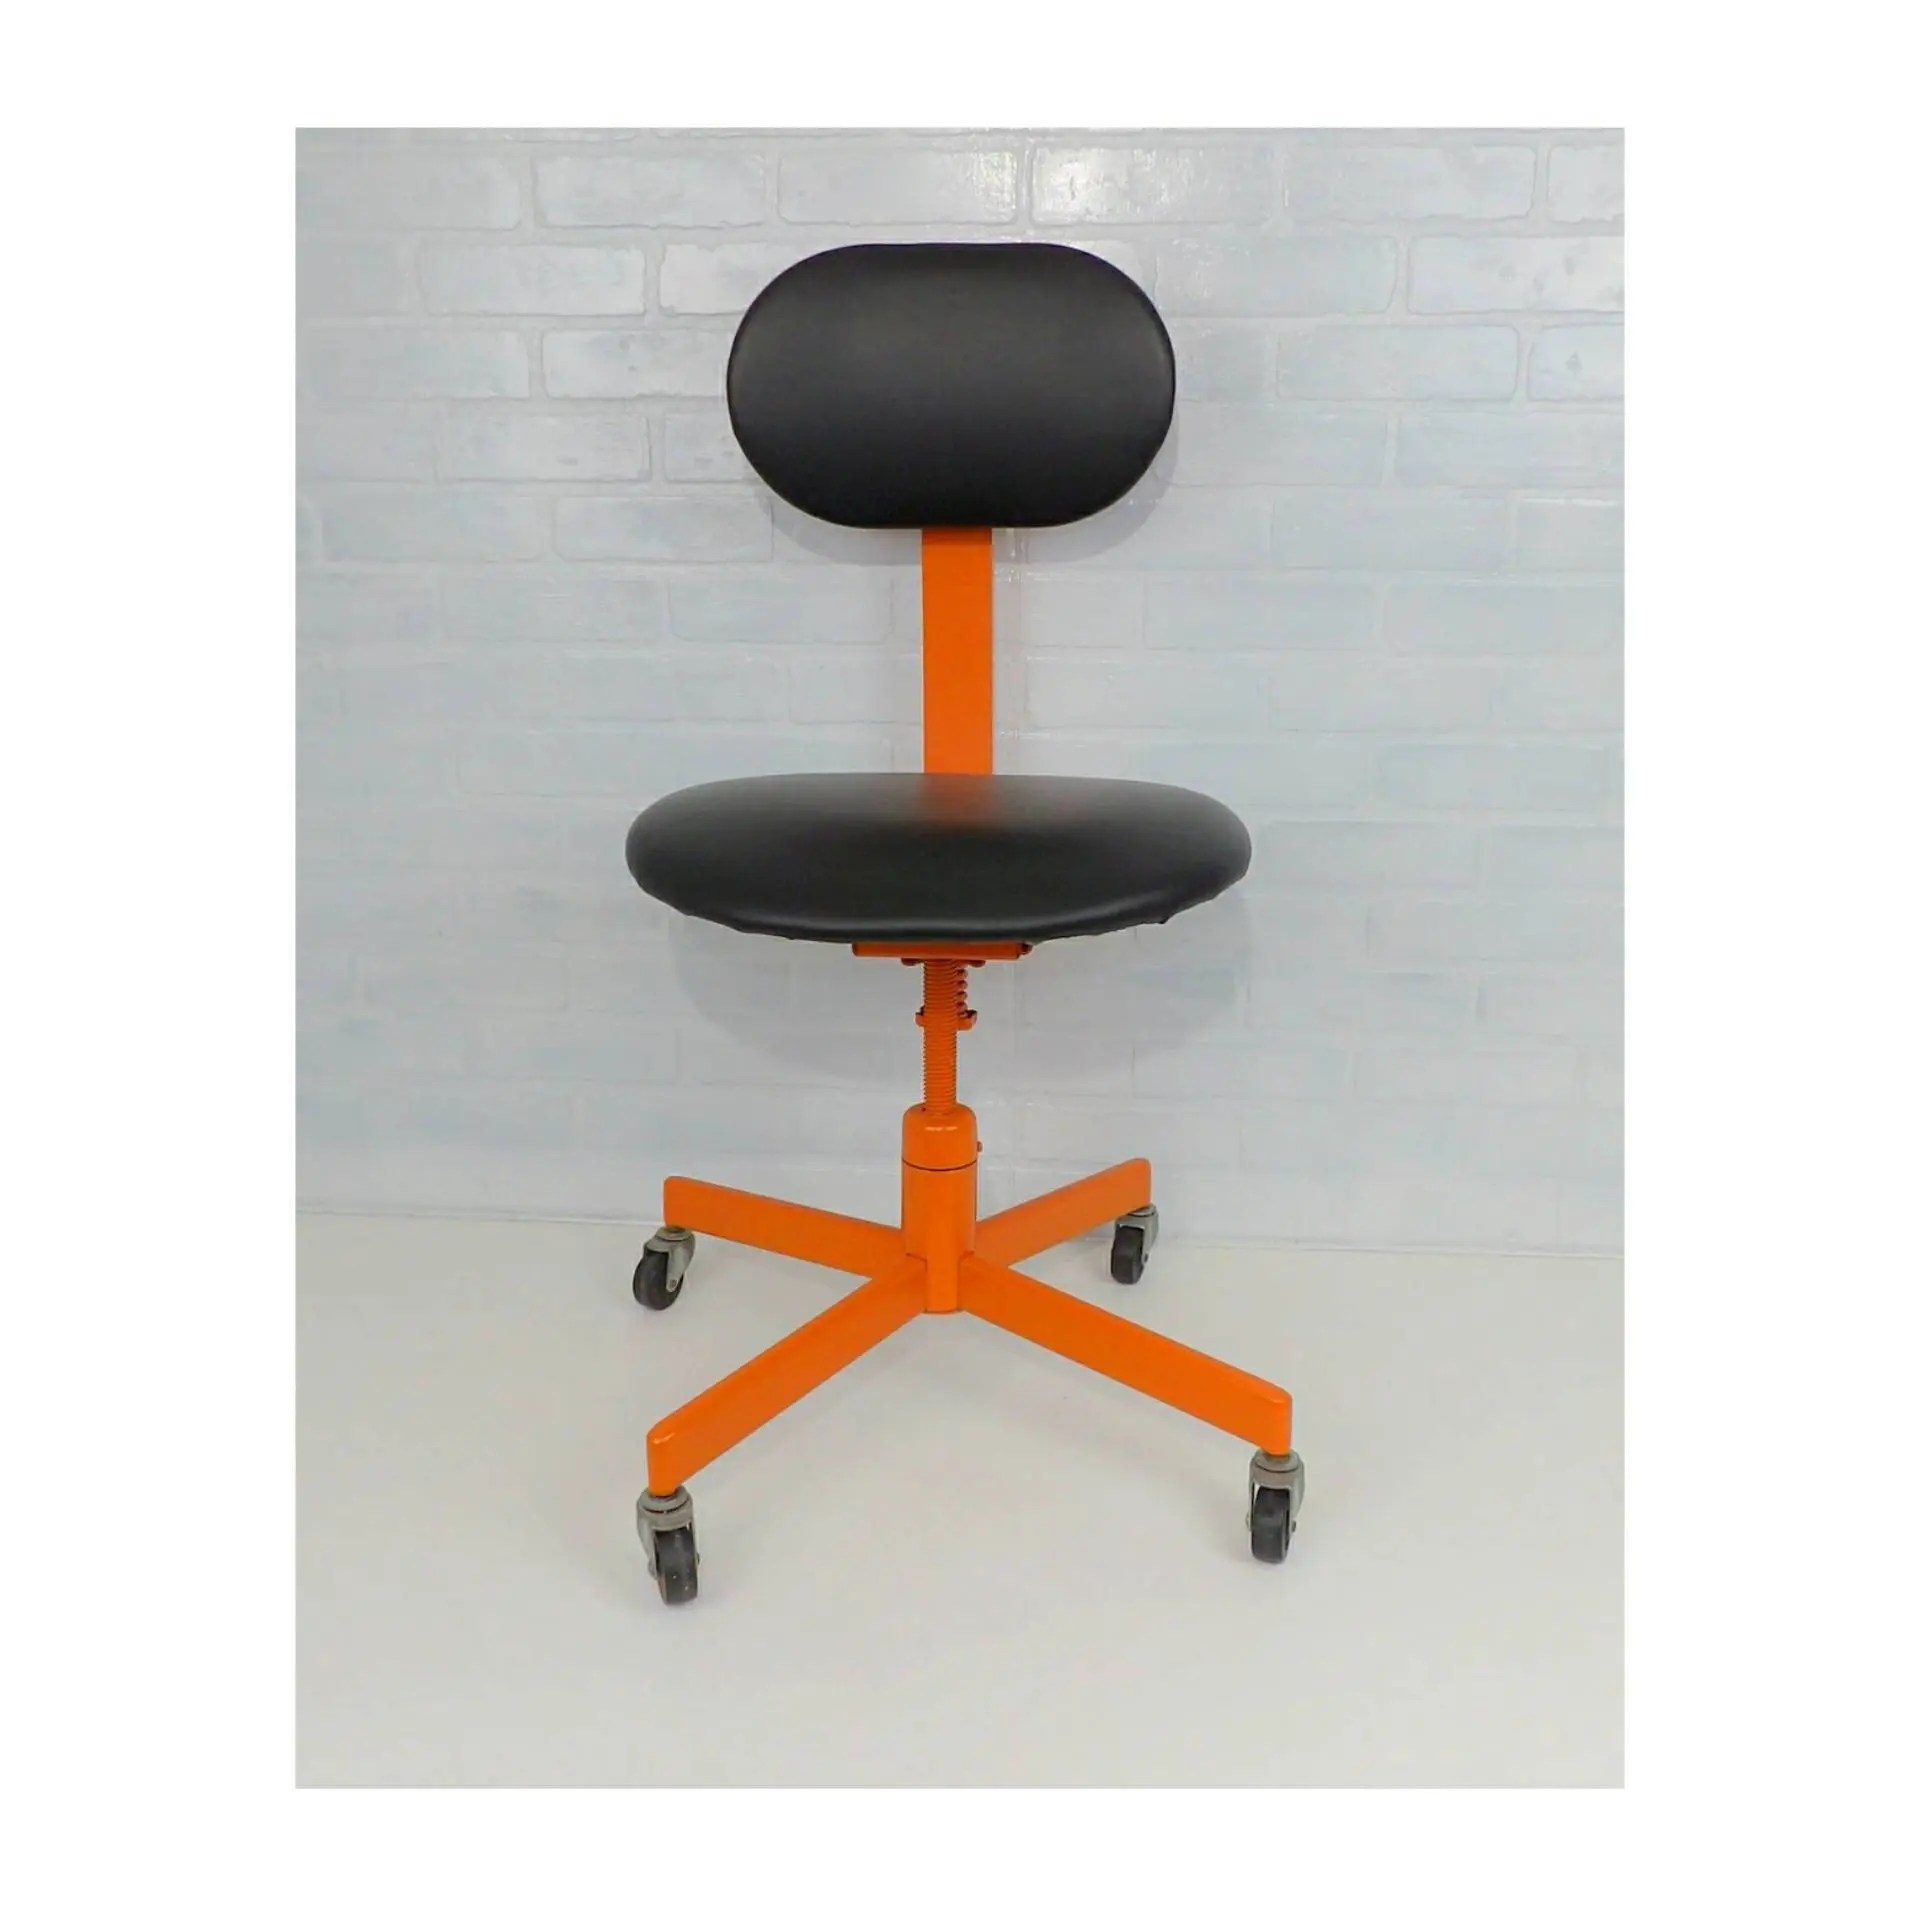 Orange Office Chairs Office Chair Orange Black Mid Century Modern Vintage Dental Tattoo Salon Doctor Adjustable Tanker Desk Mechanical Age Industrial Rolling